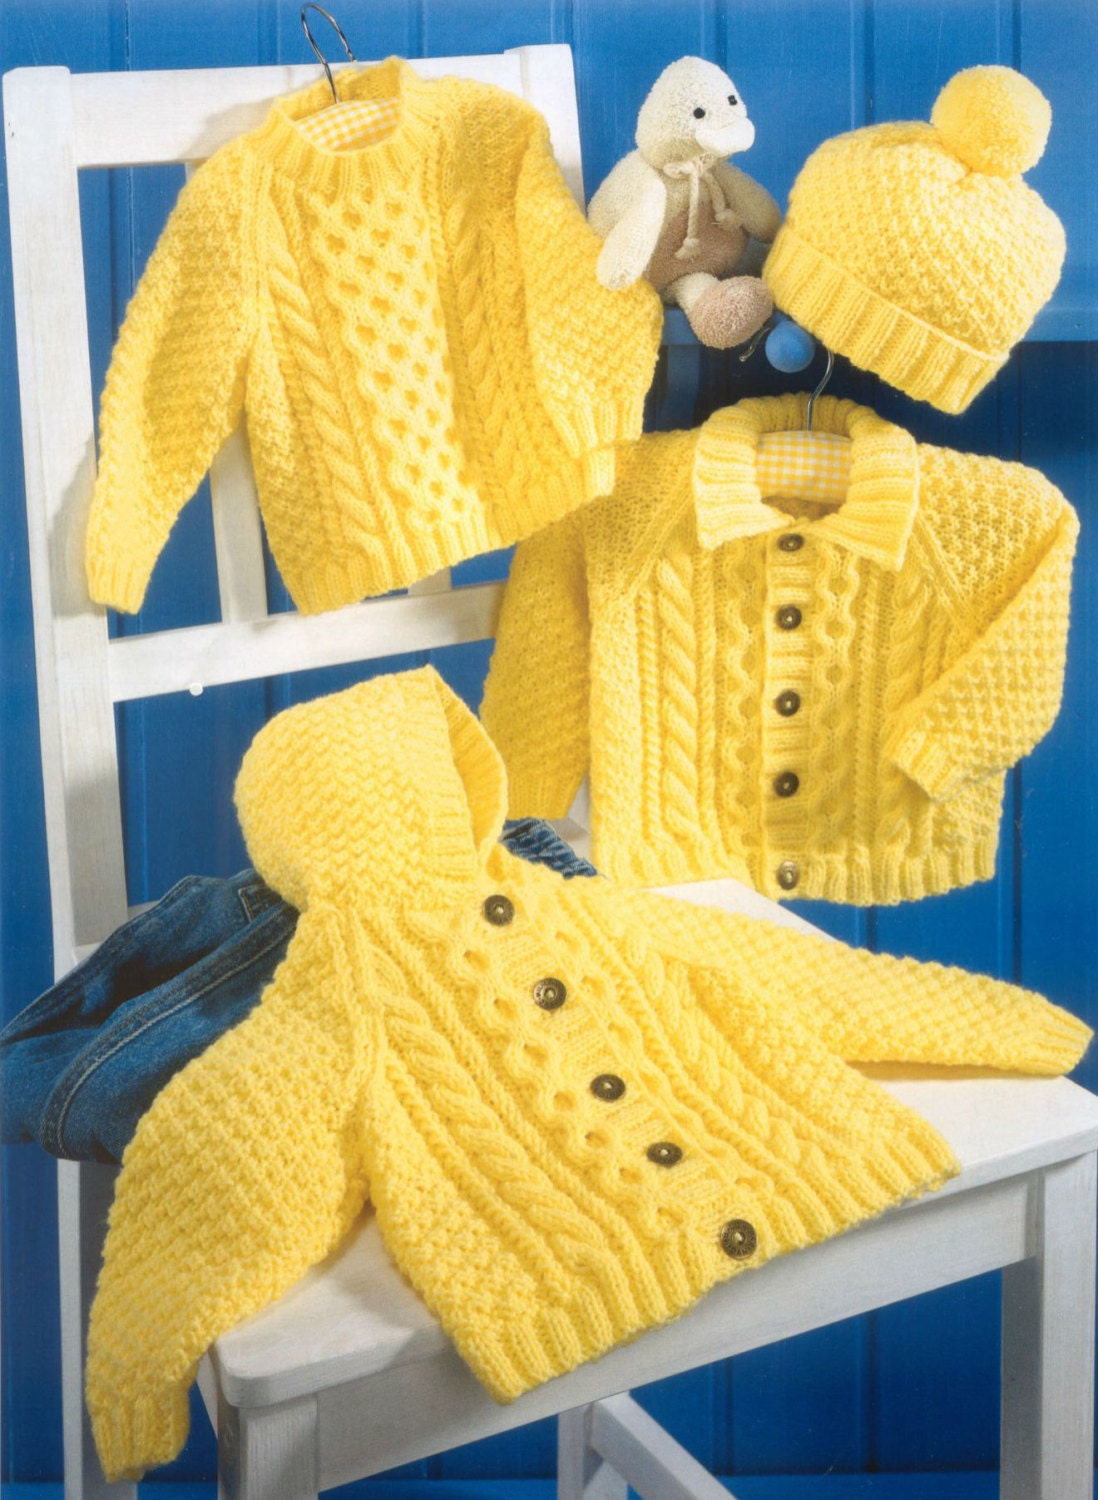 Knit Baby Cabled Cardigan Sweater Hooded Jacket Hat Vintage